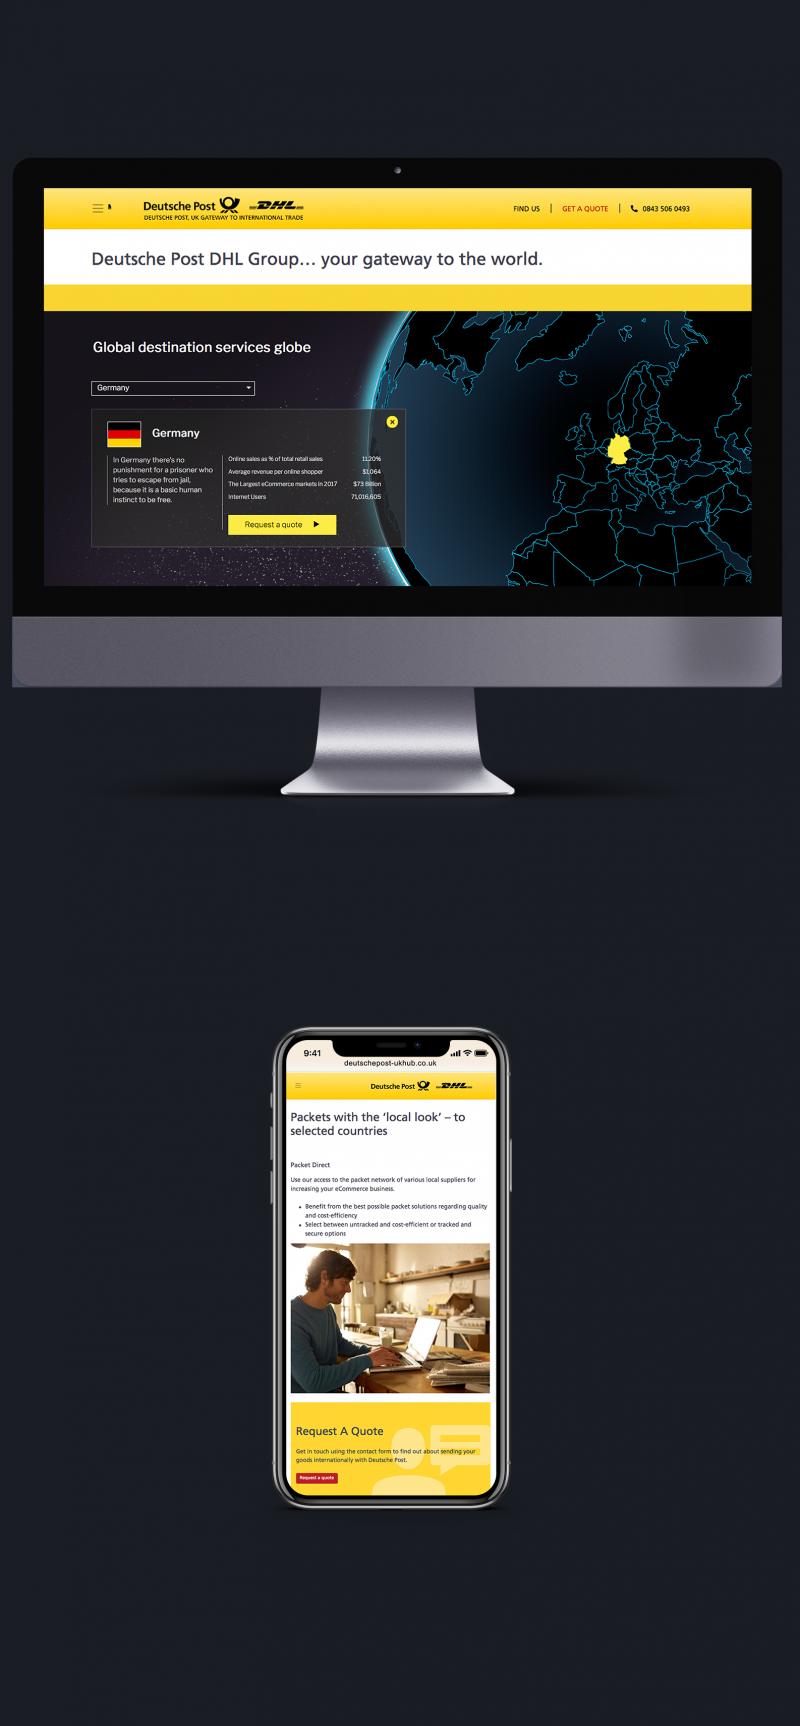 Deutsche Post Desktop and Mobile